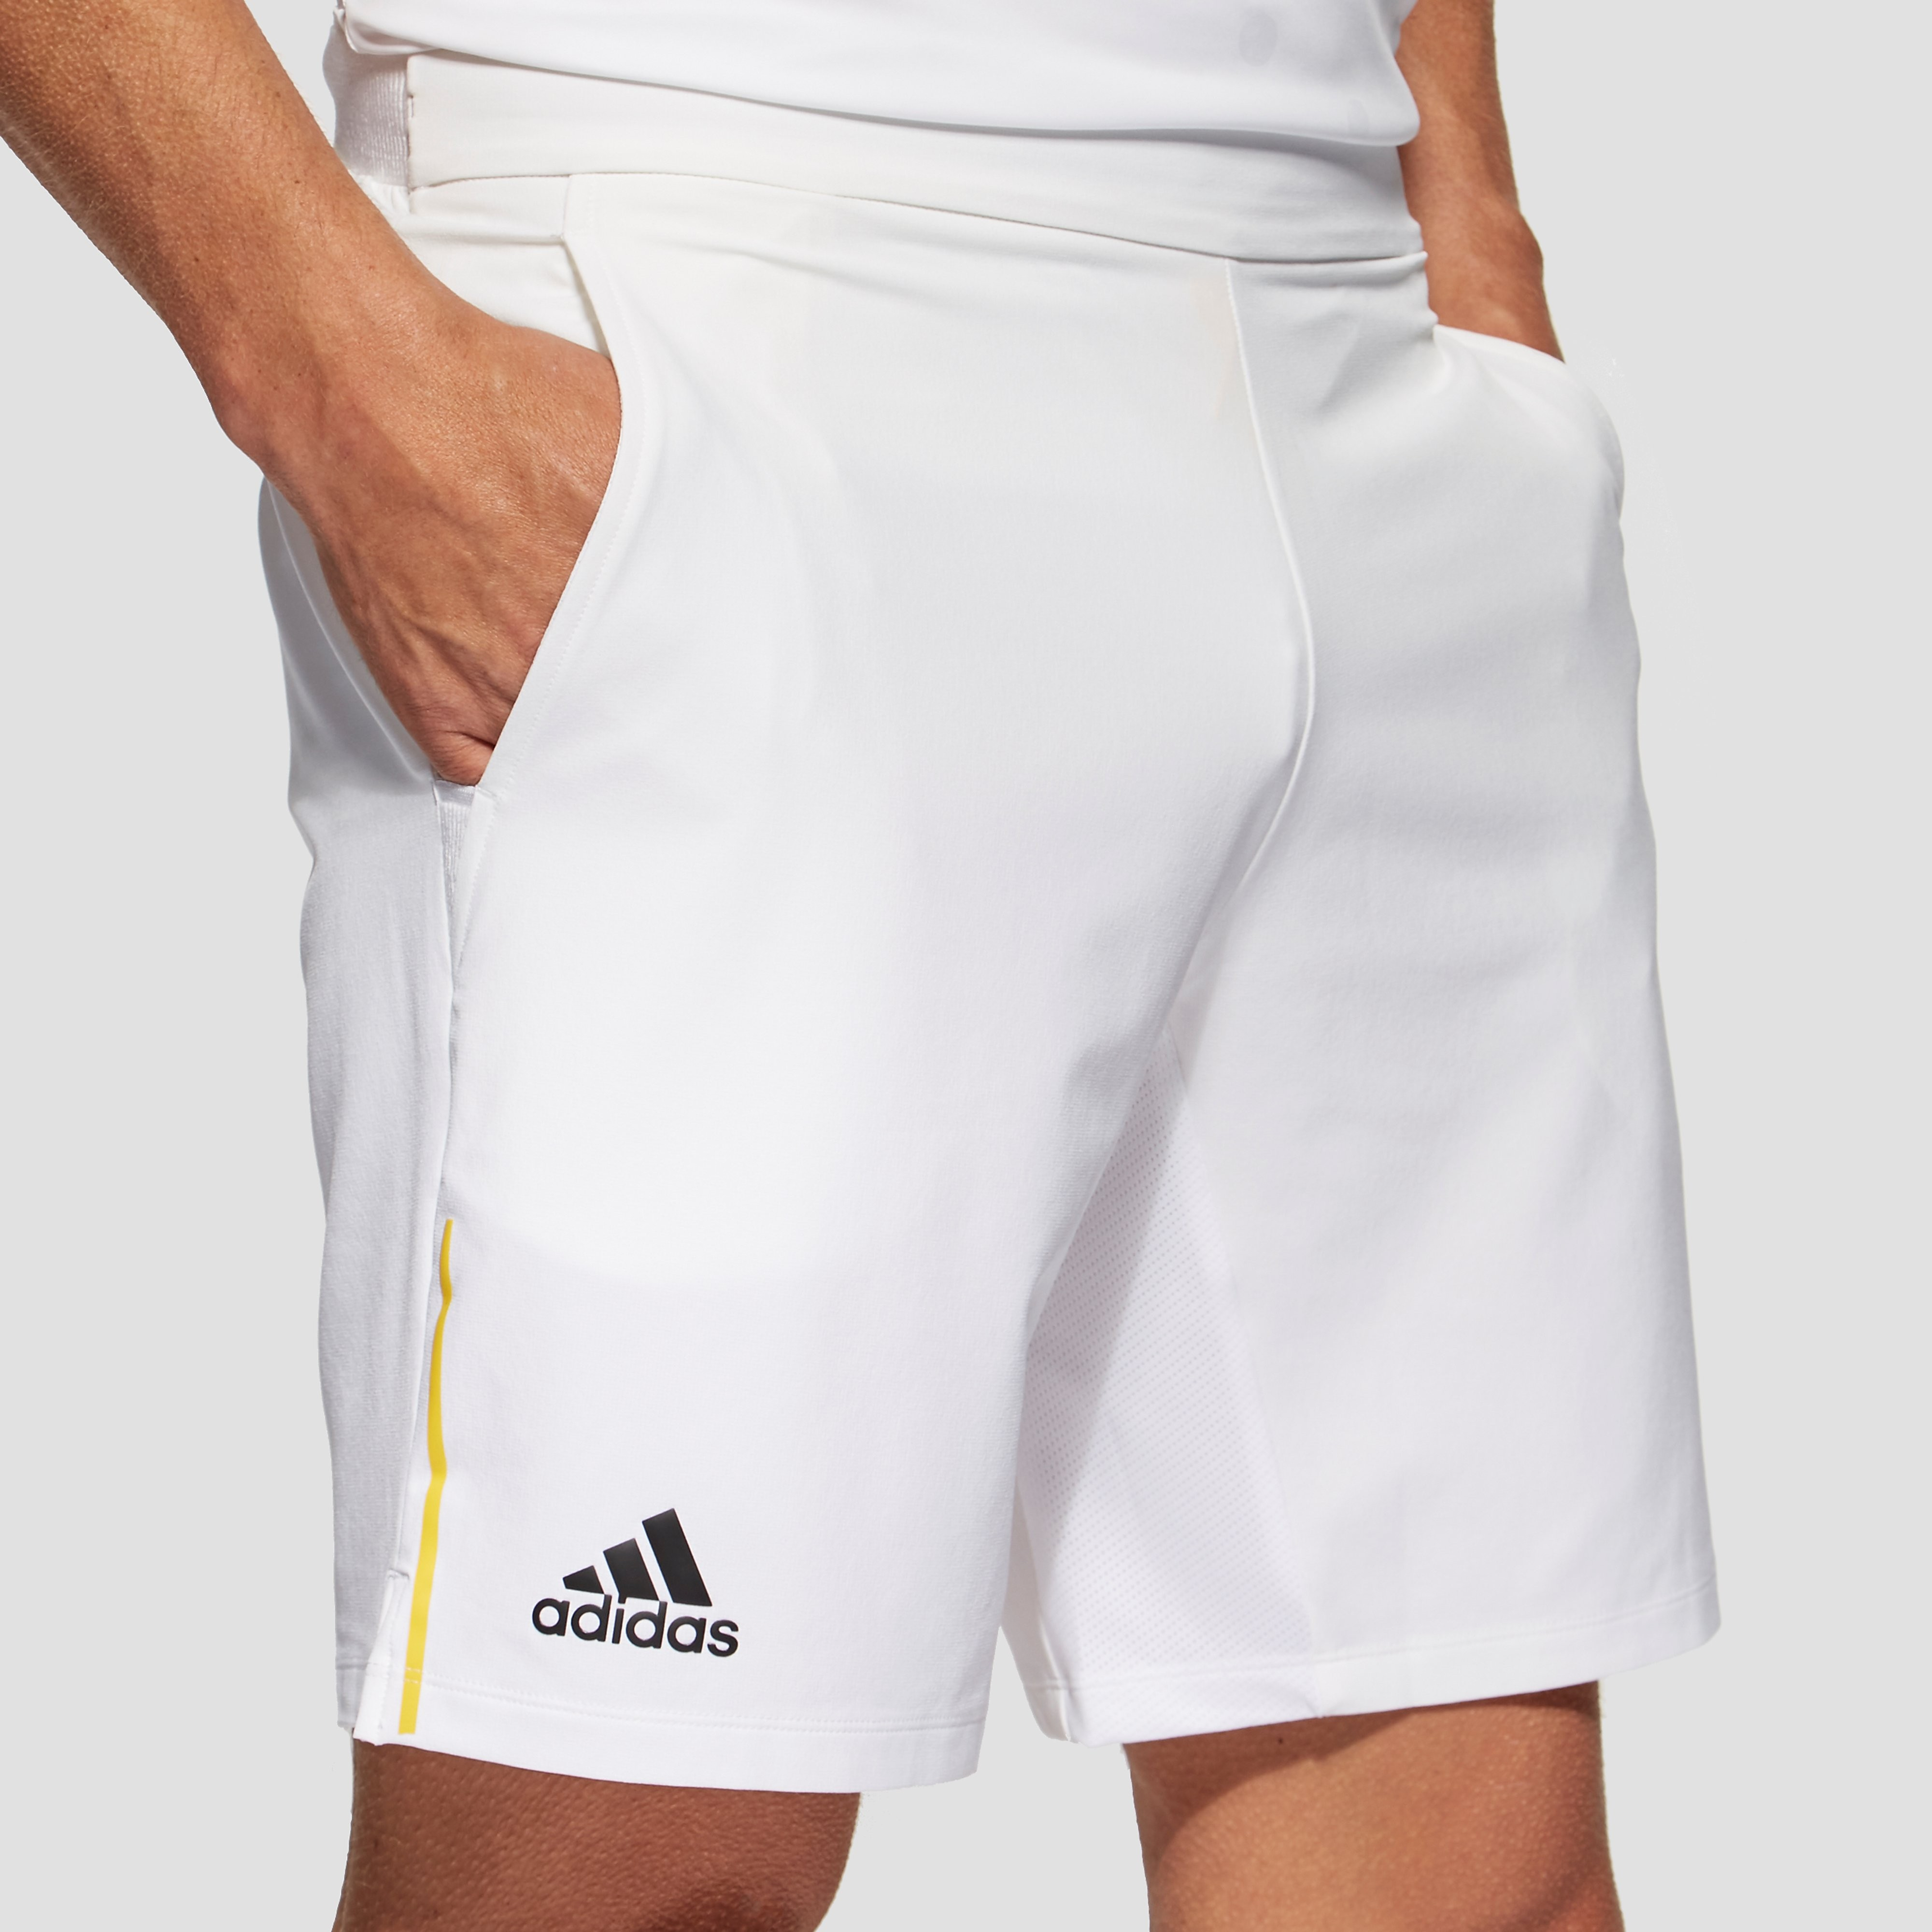 adidas London Men's Tennis Shorts